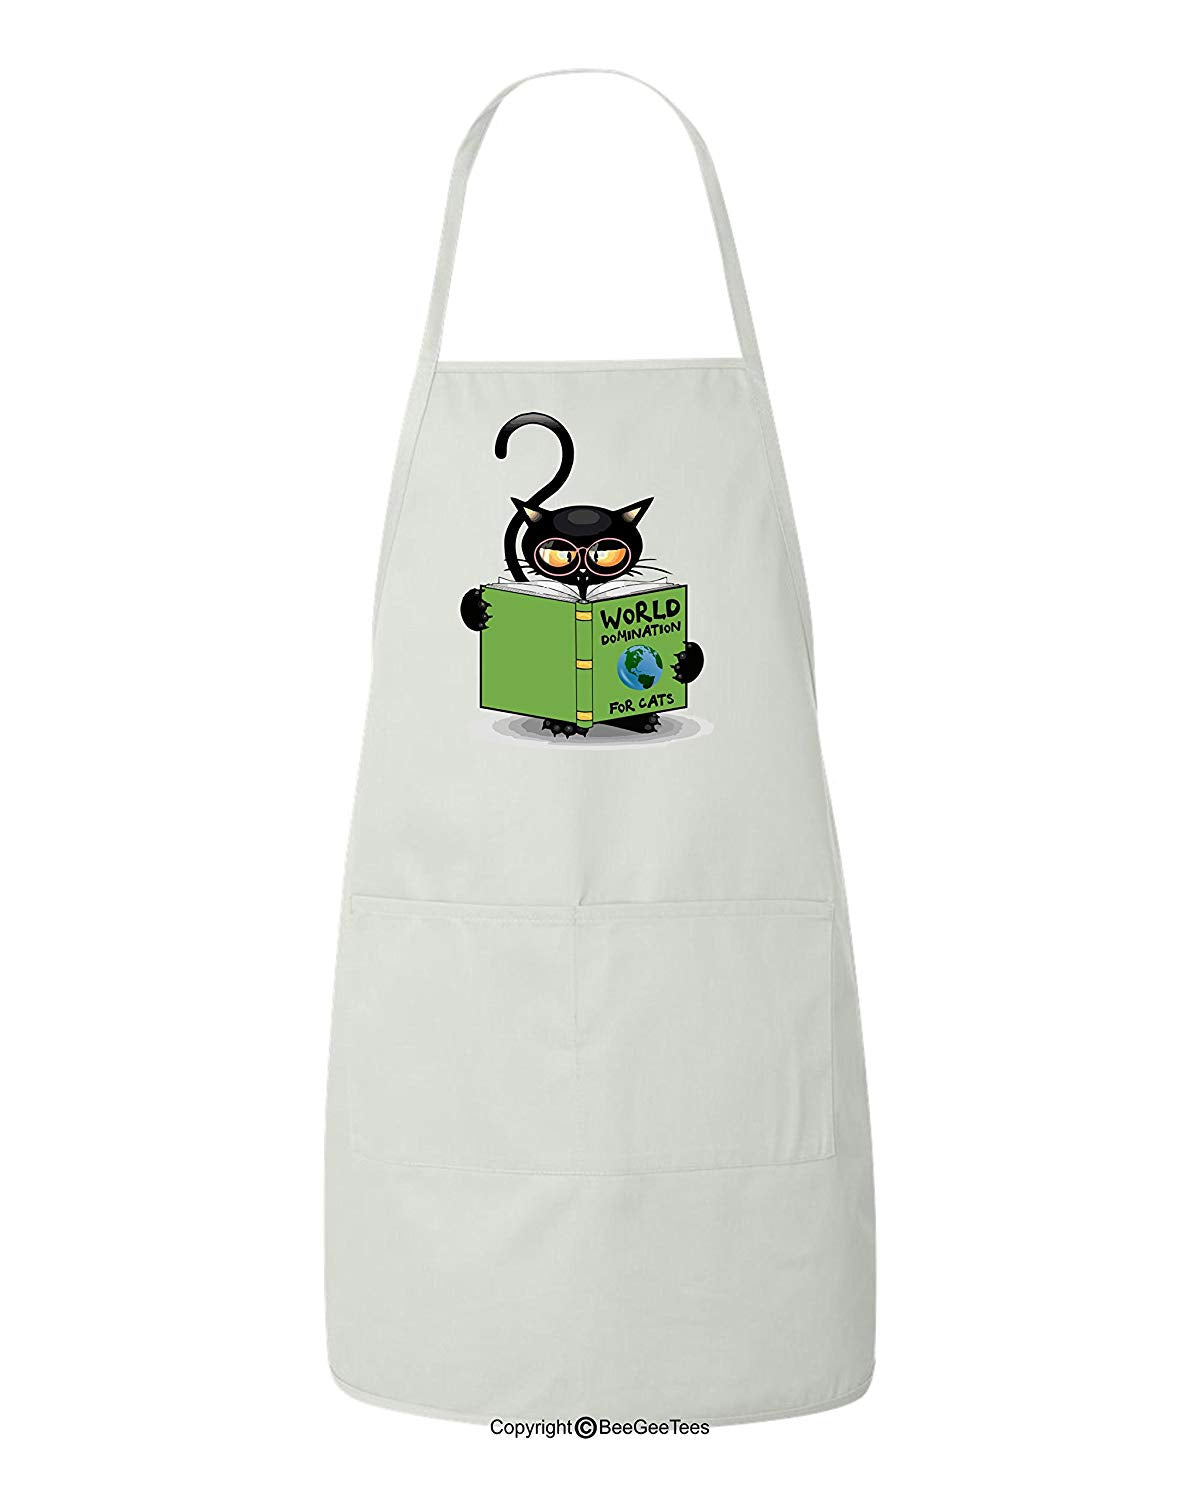 World Domination For Cats Funny Cat Lover BBQ Apron by BeeGeeTees for Grandma's Kitty Rescue